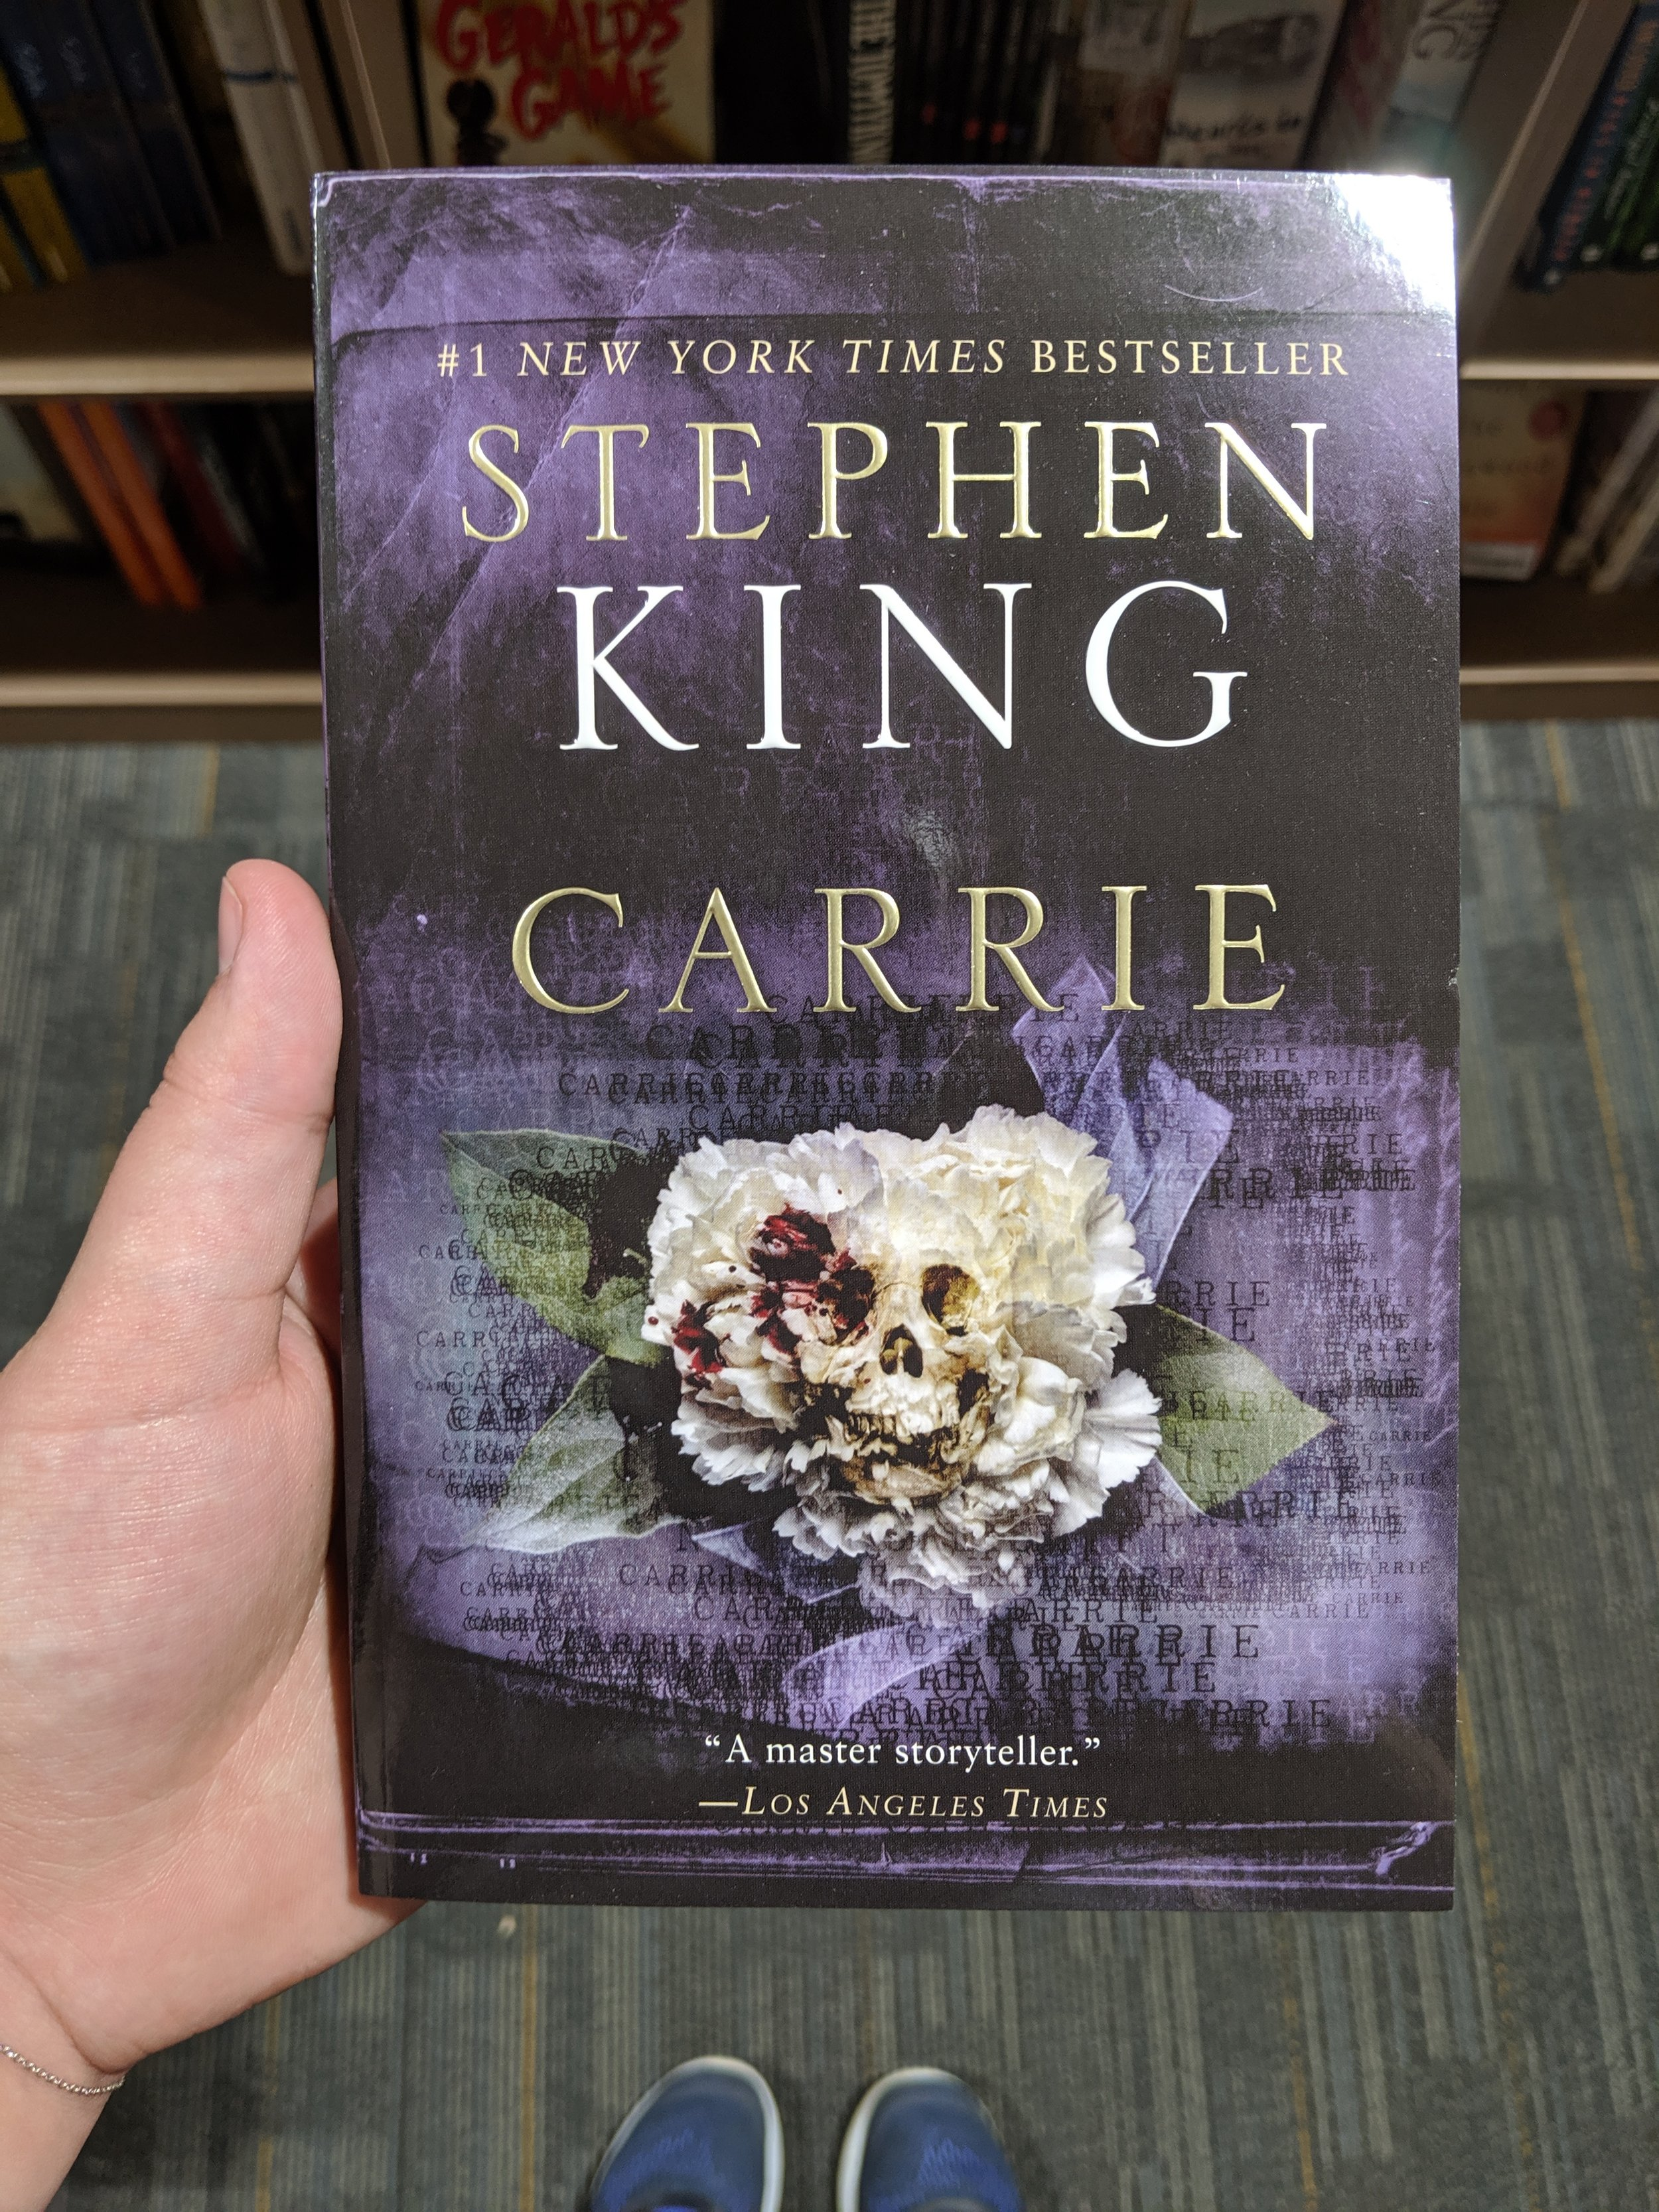 Carrie by Stephen King at 2nd and Charles in Fort Collins, Colorado. My first book of the summer.